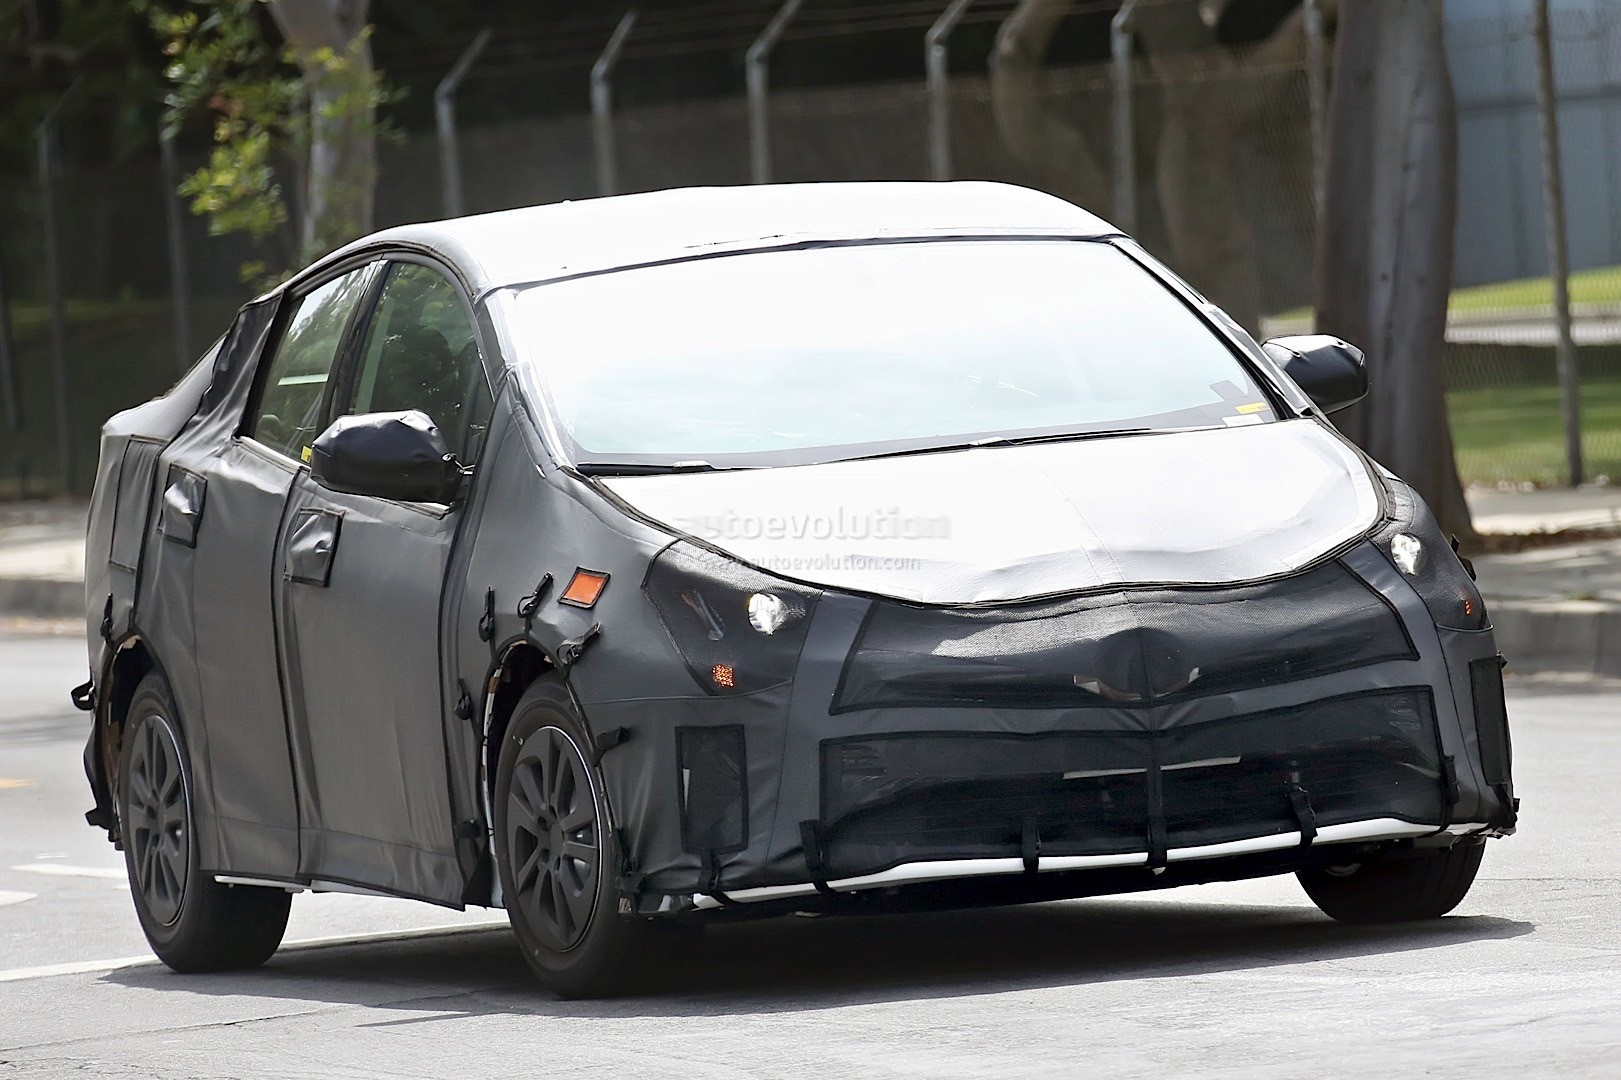 2017 Toyota Prius Reveals Interior Configuration In Latest